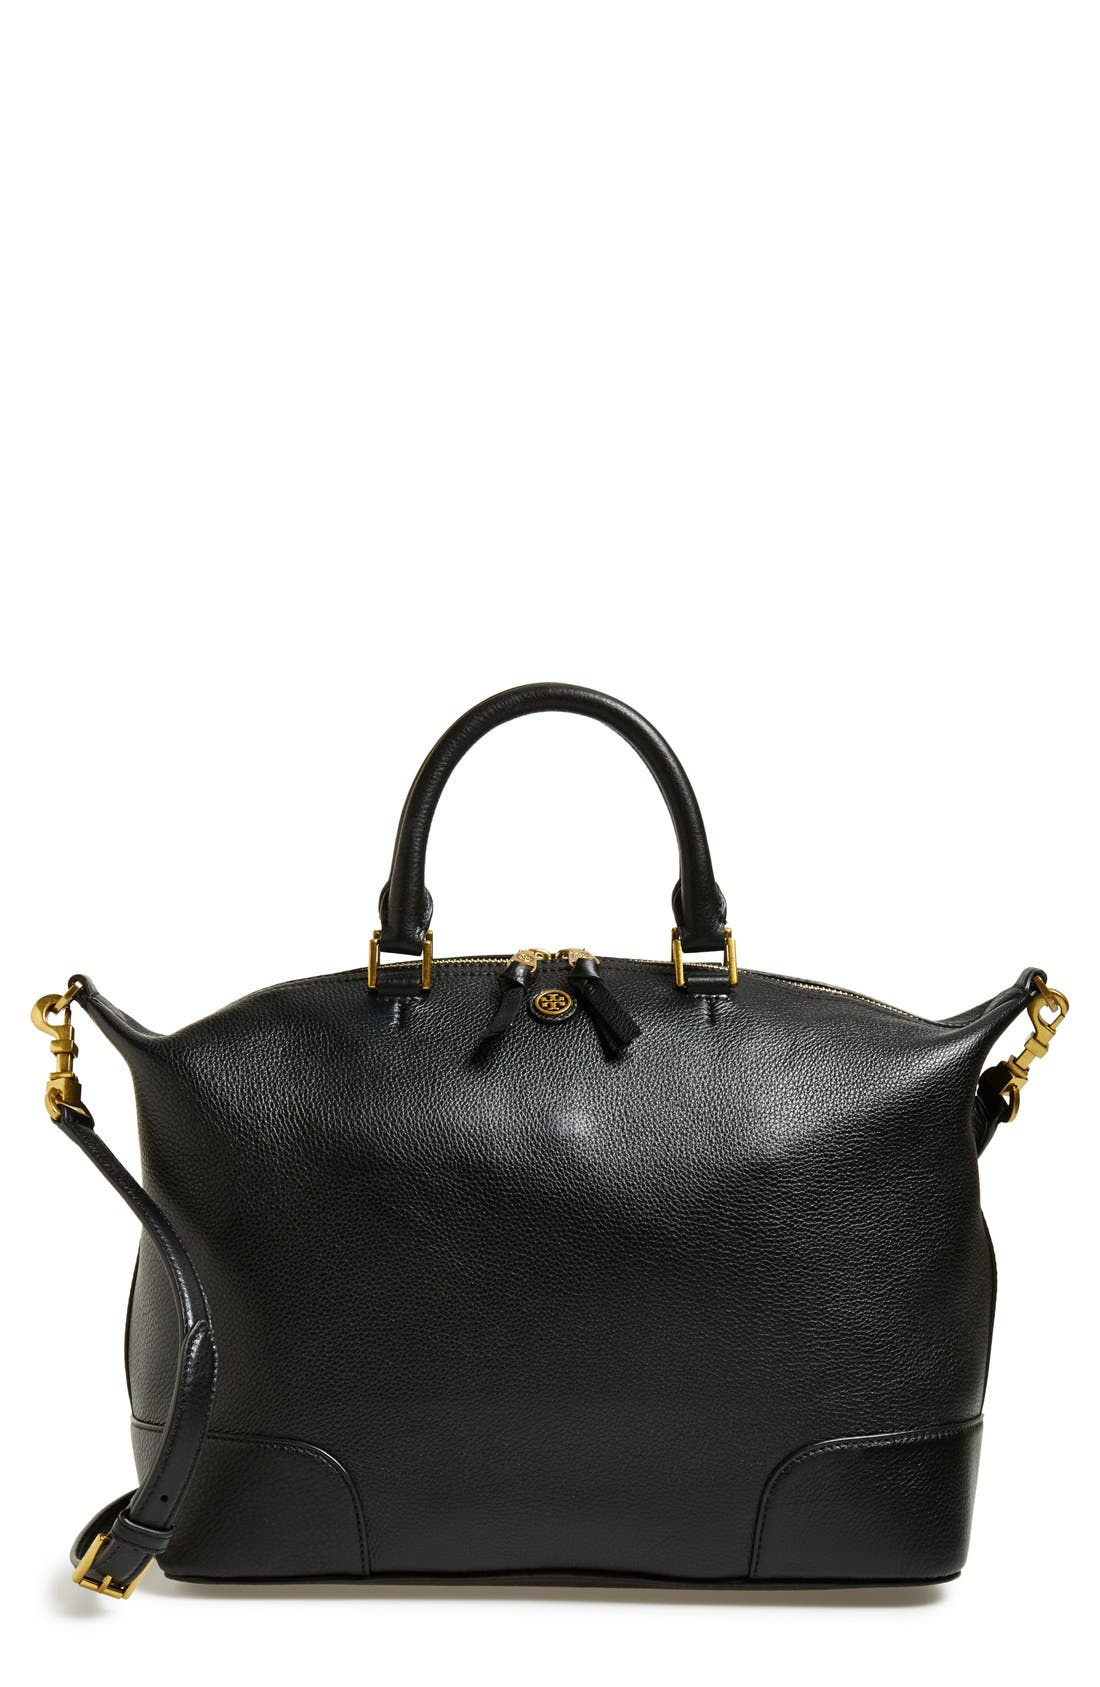 Main Image - Tory Burch 'Frances' Slouchy Leather Satchel